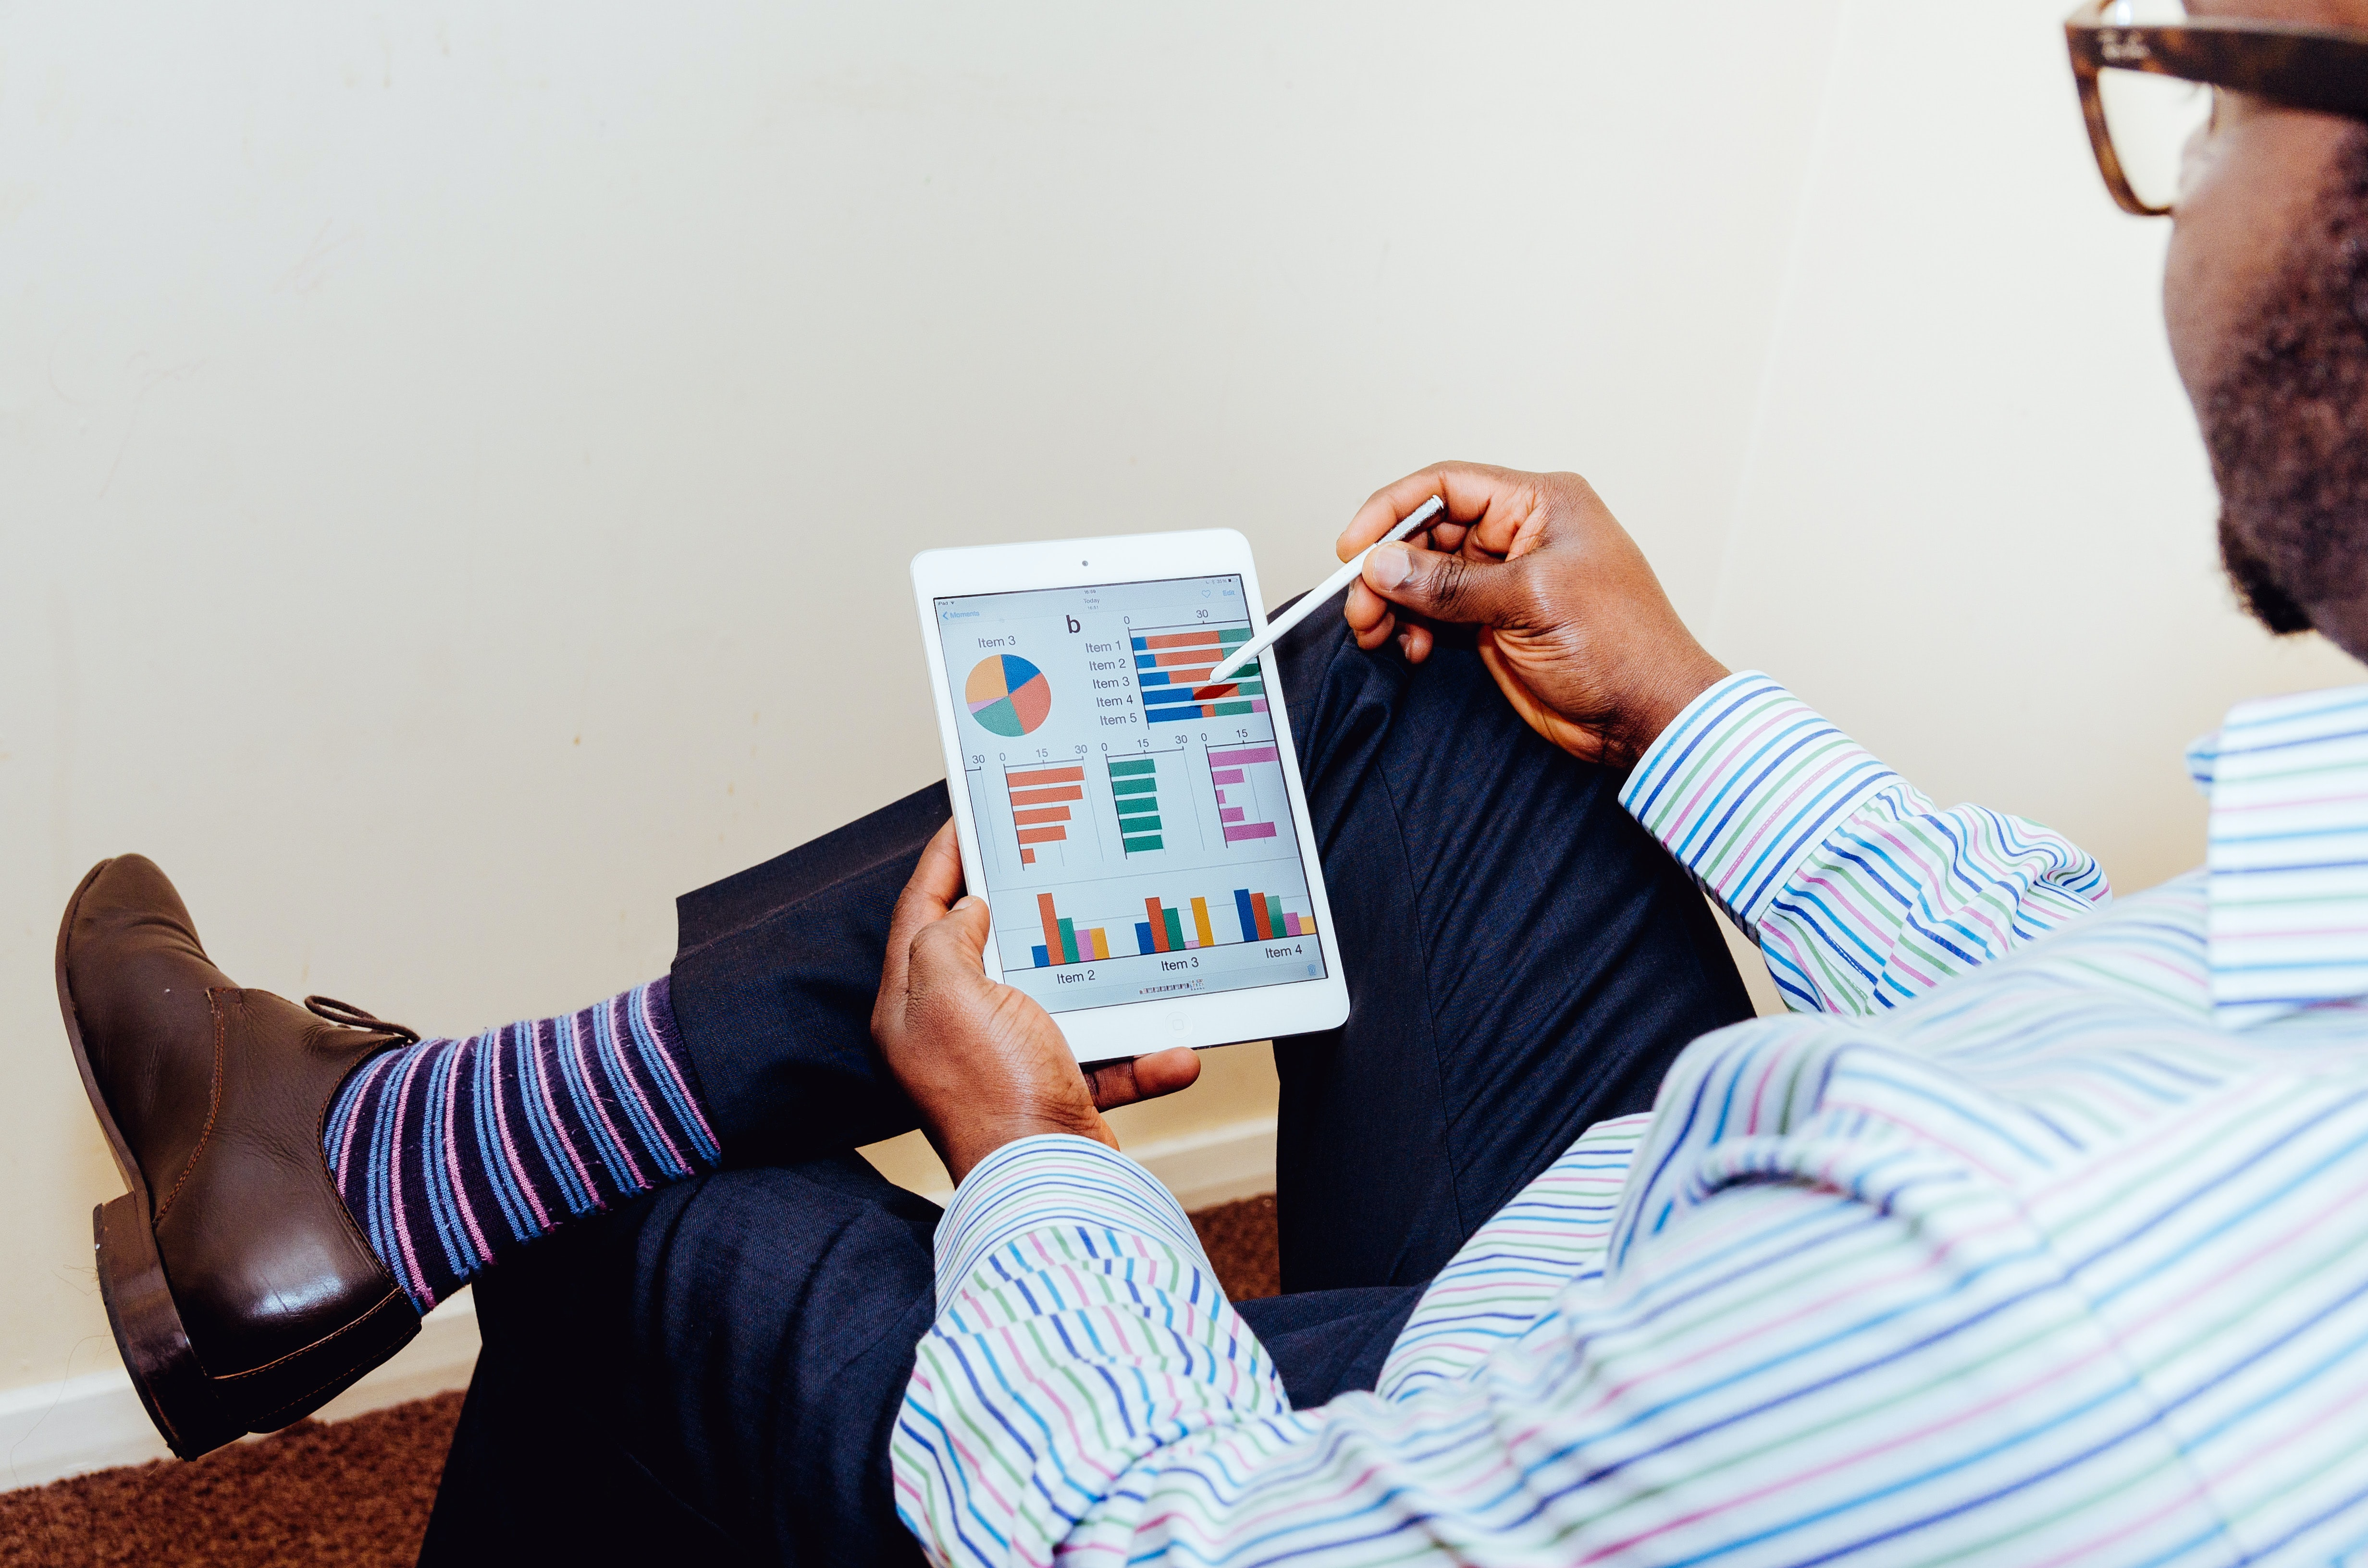 image of man looking at a graph on a tablet